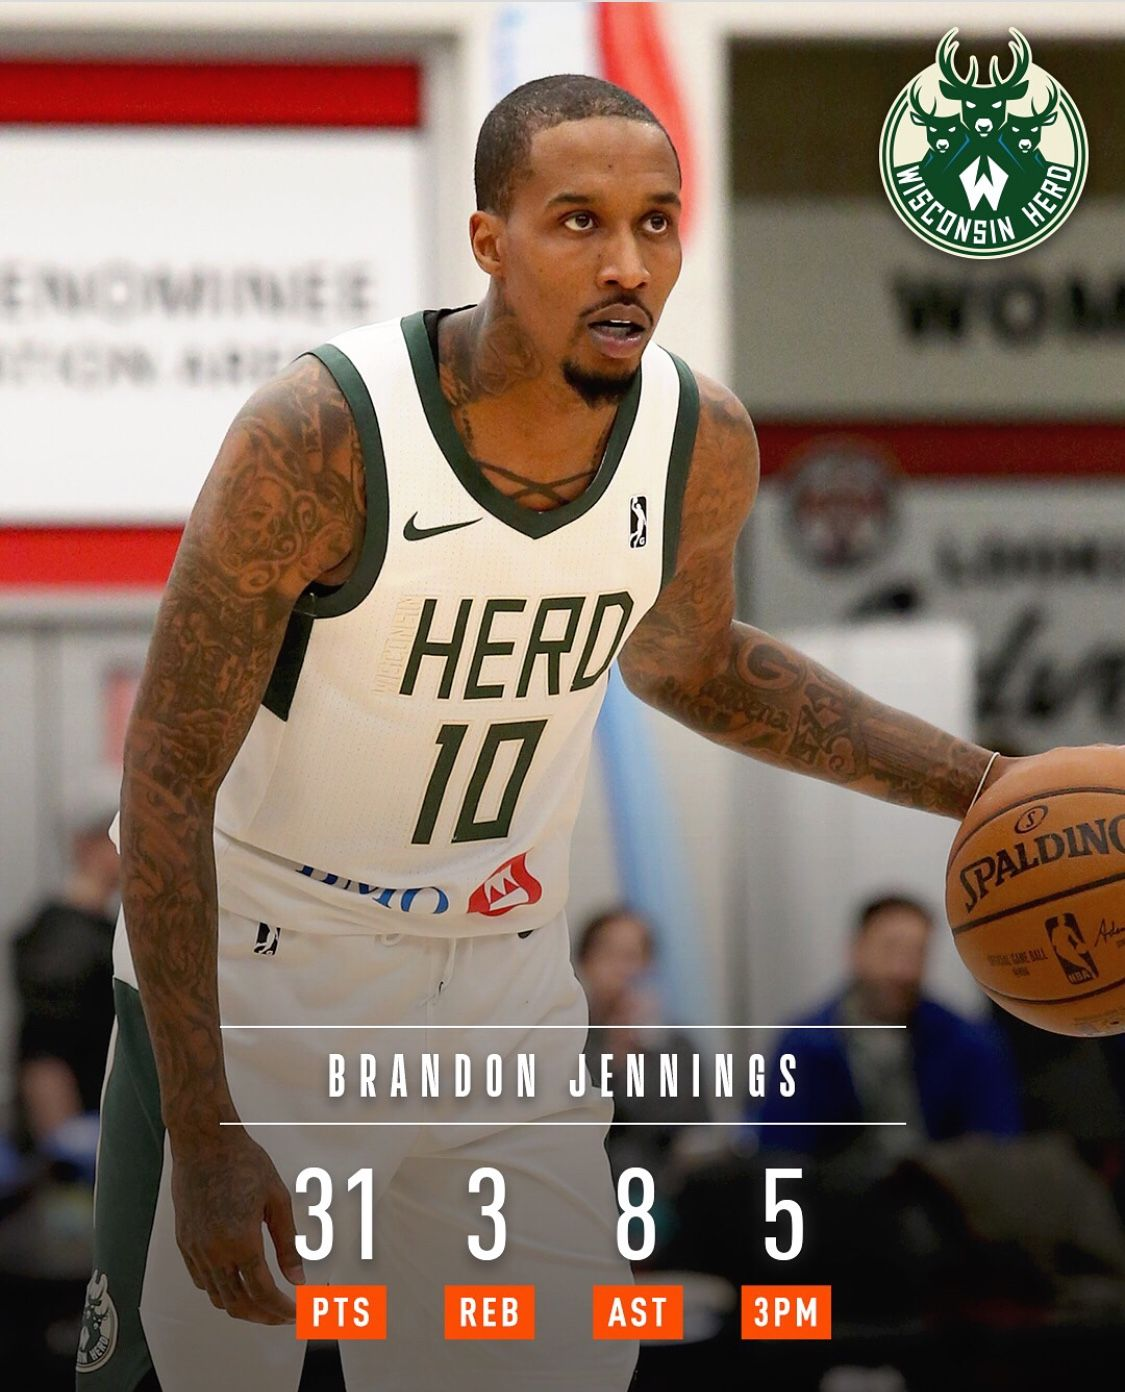 c9e81366d50 Brandon Jennings back from China and back to Milwaukee playing with the  Herd. Not to bad of a debut